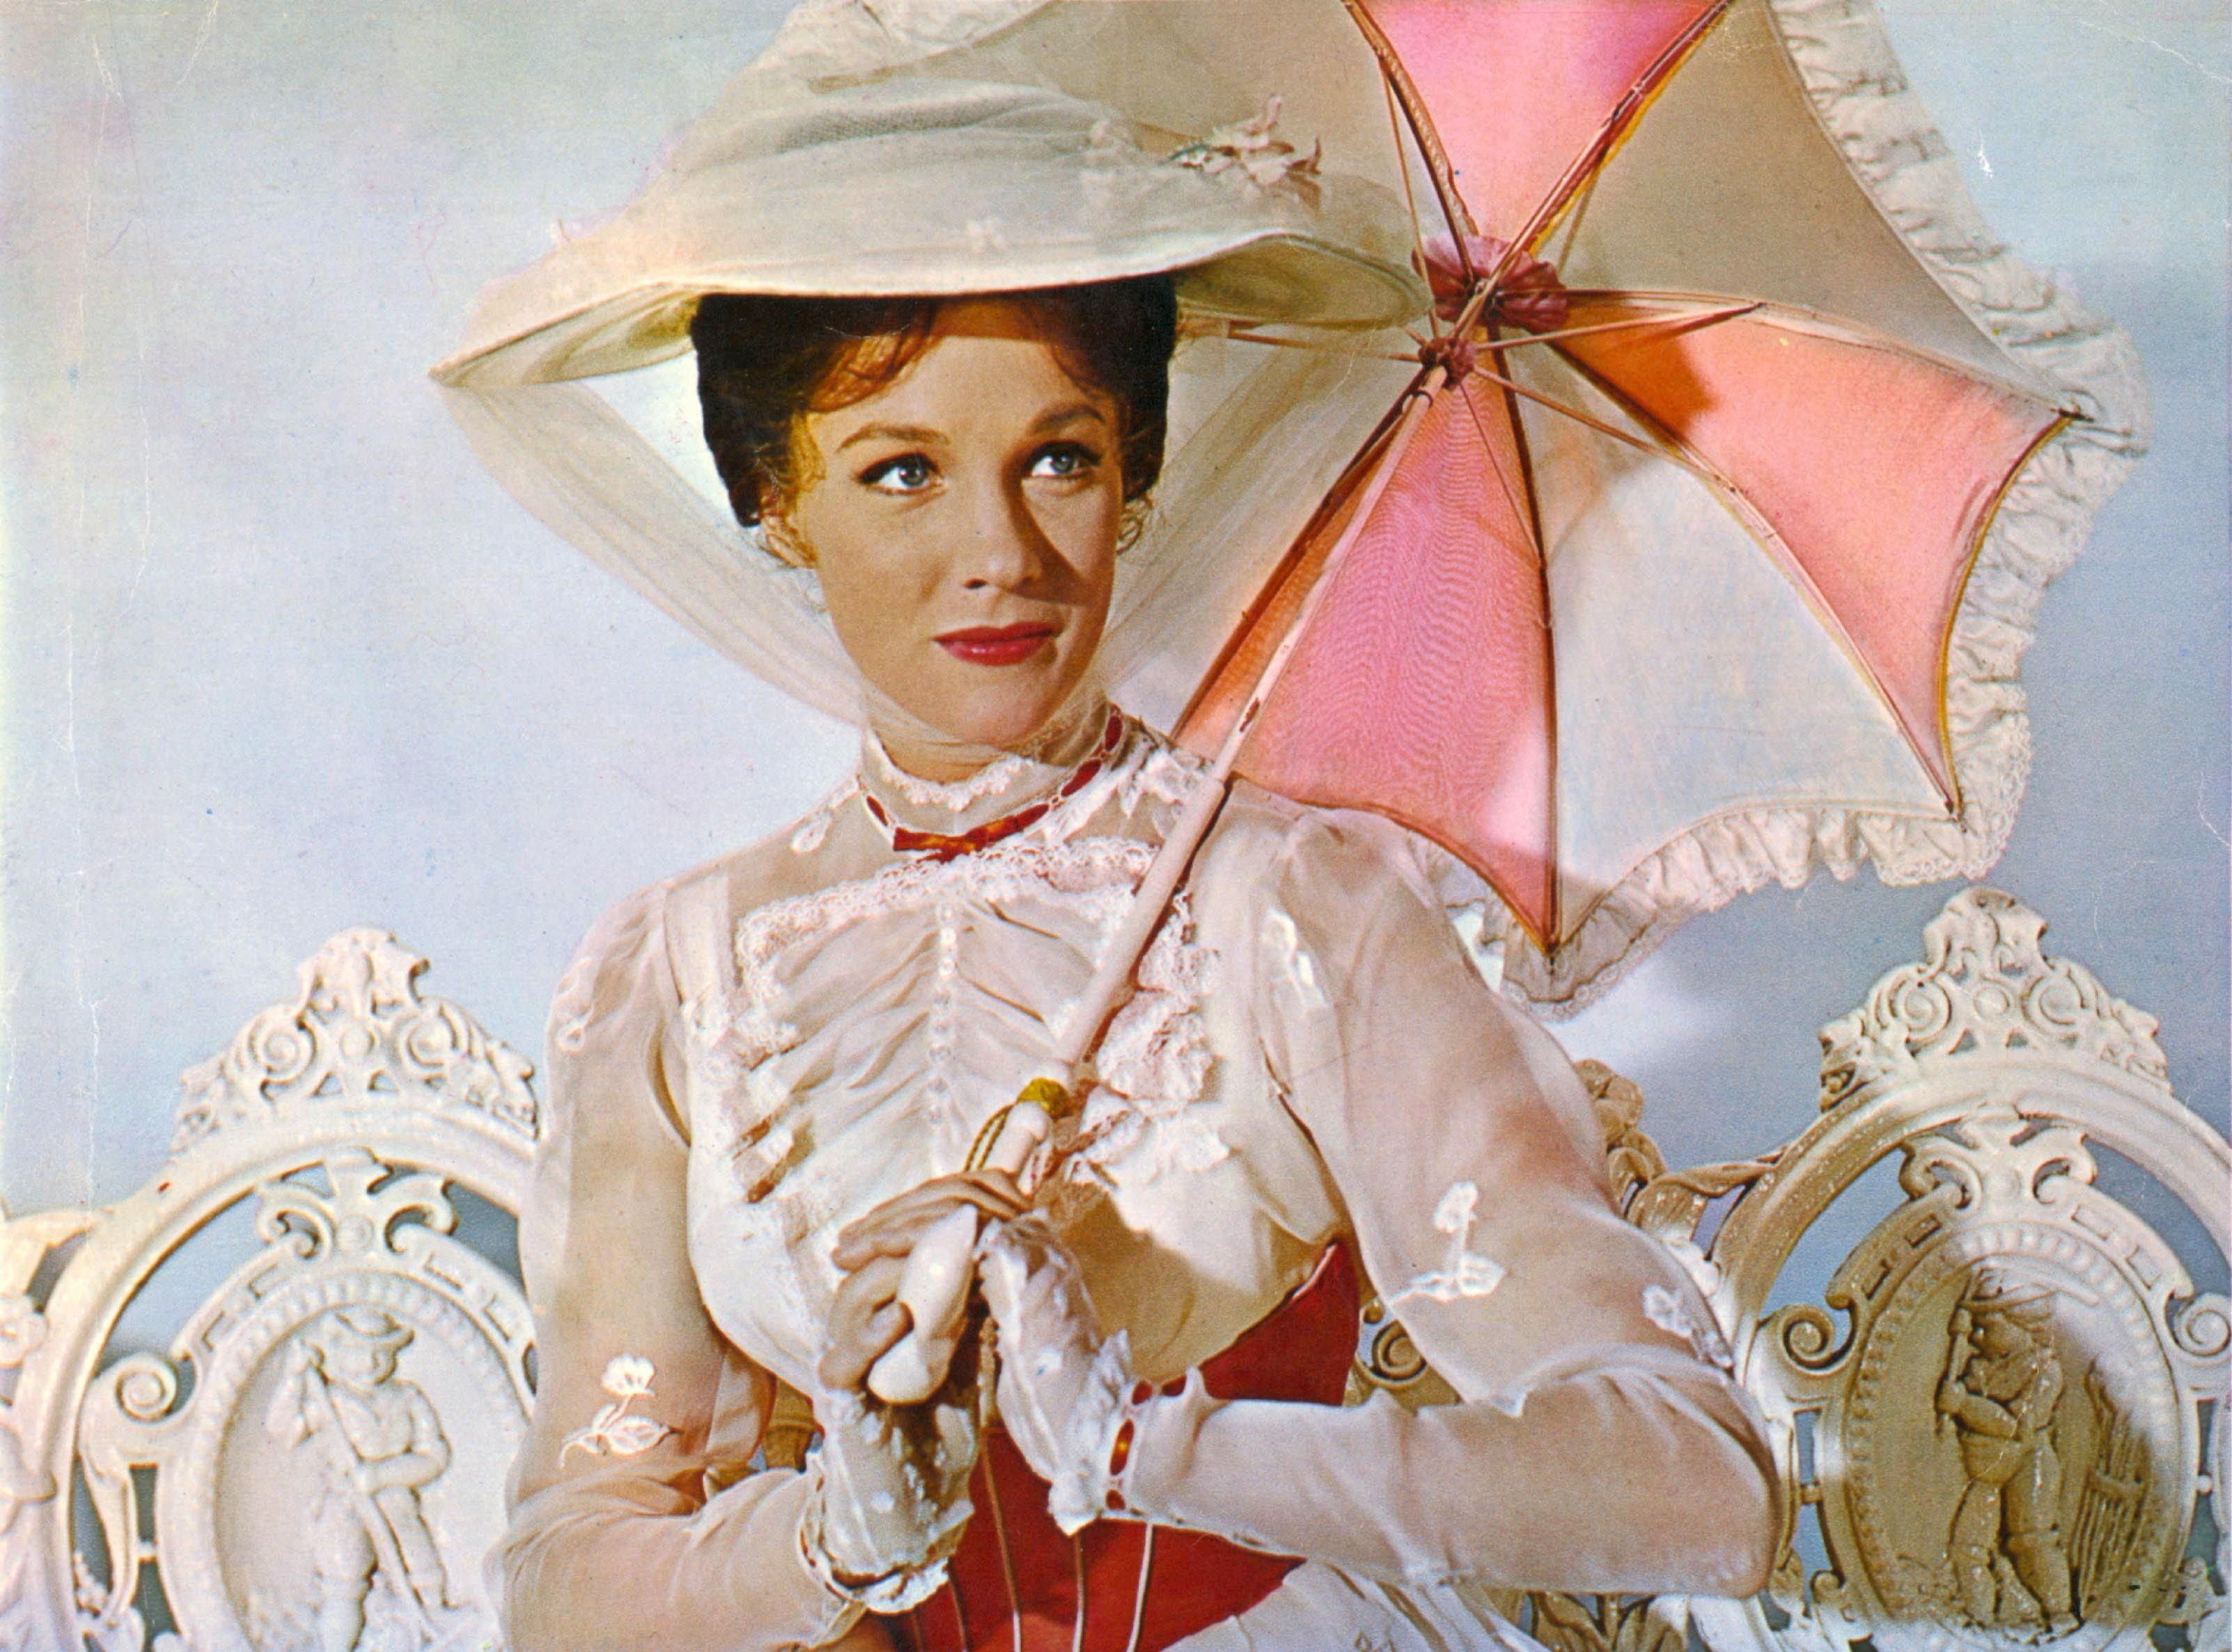 'Mary Poppins' Sequel Director Reveals Why Julie Andrews Turned Down Role In New